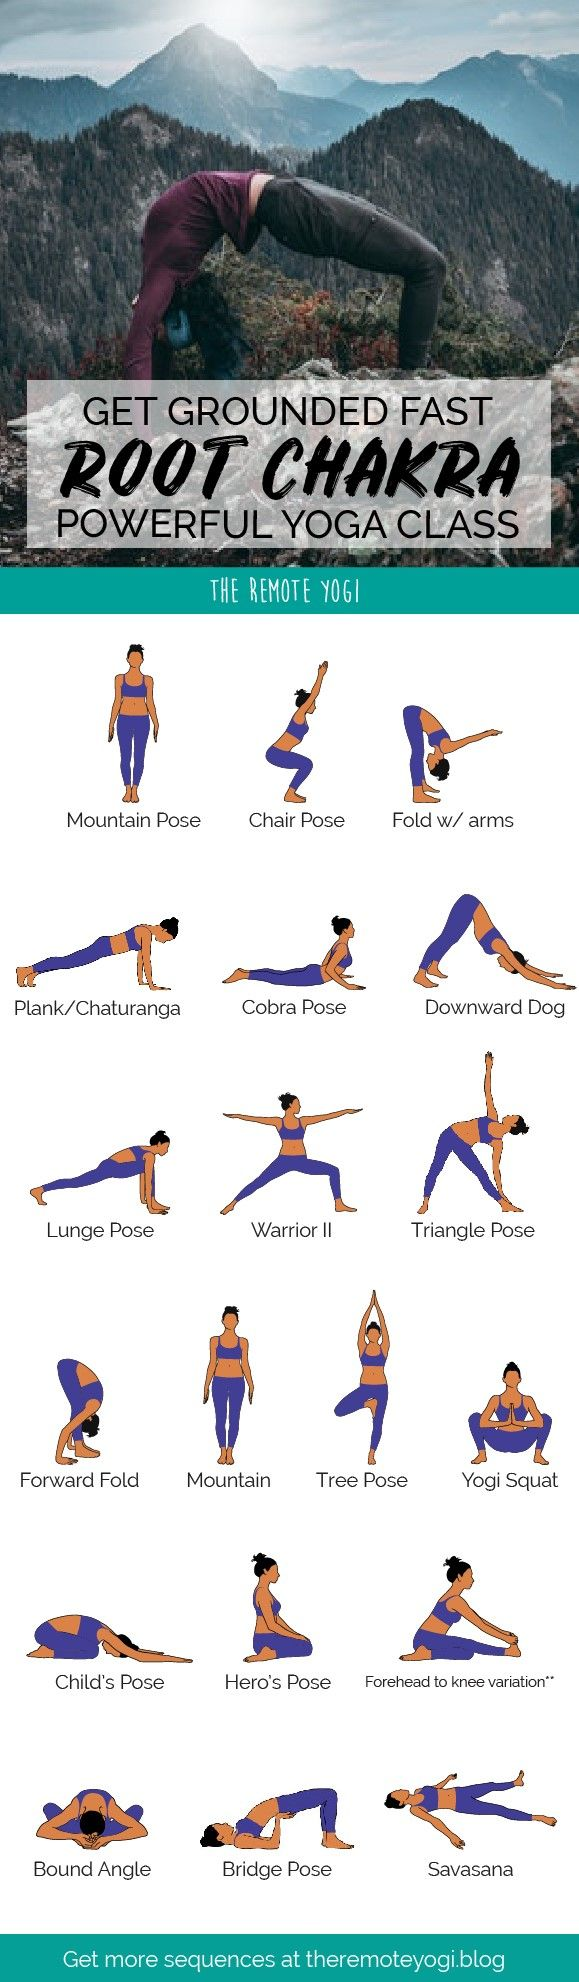 Yoga Poses For Grounding